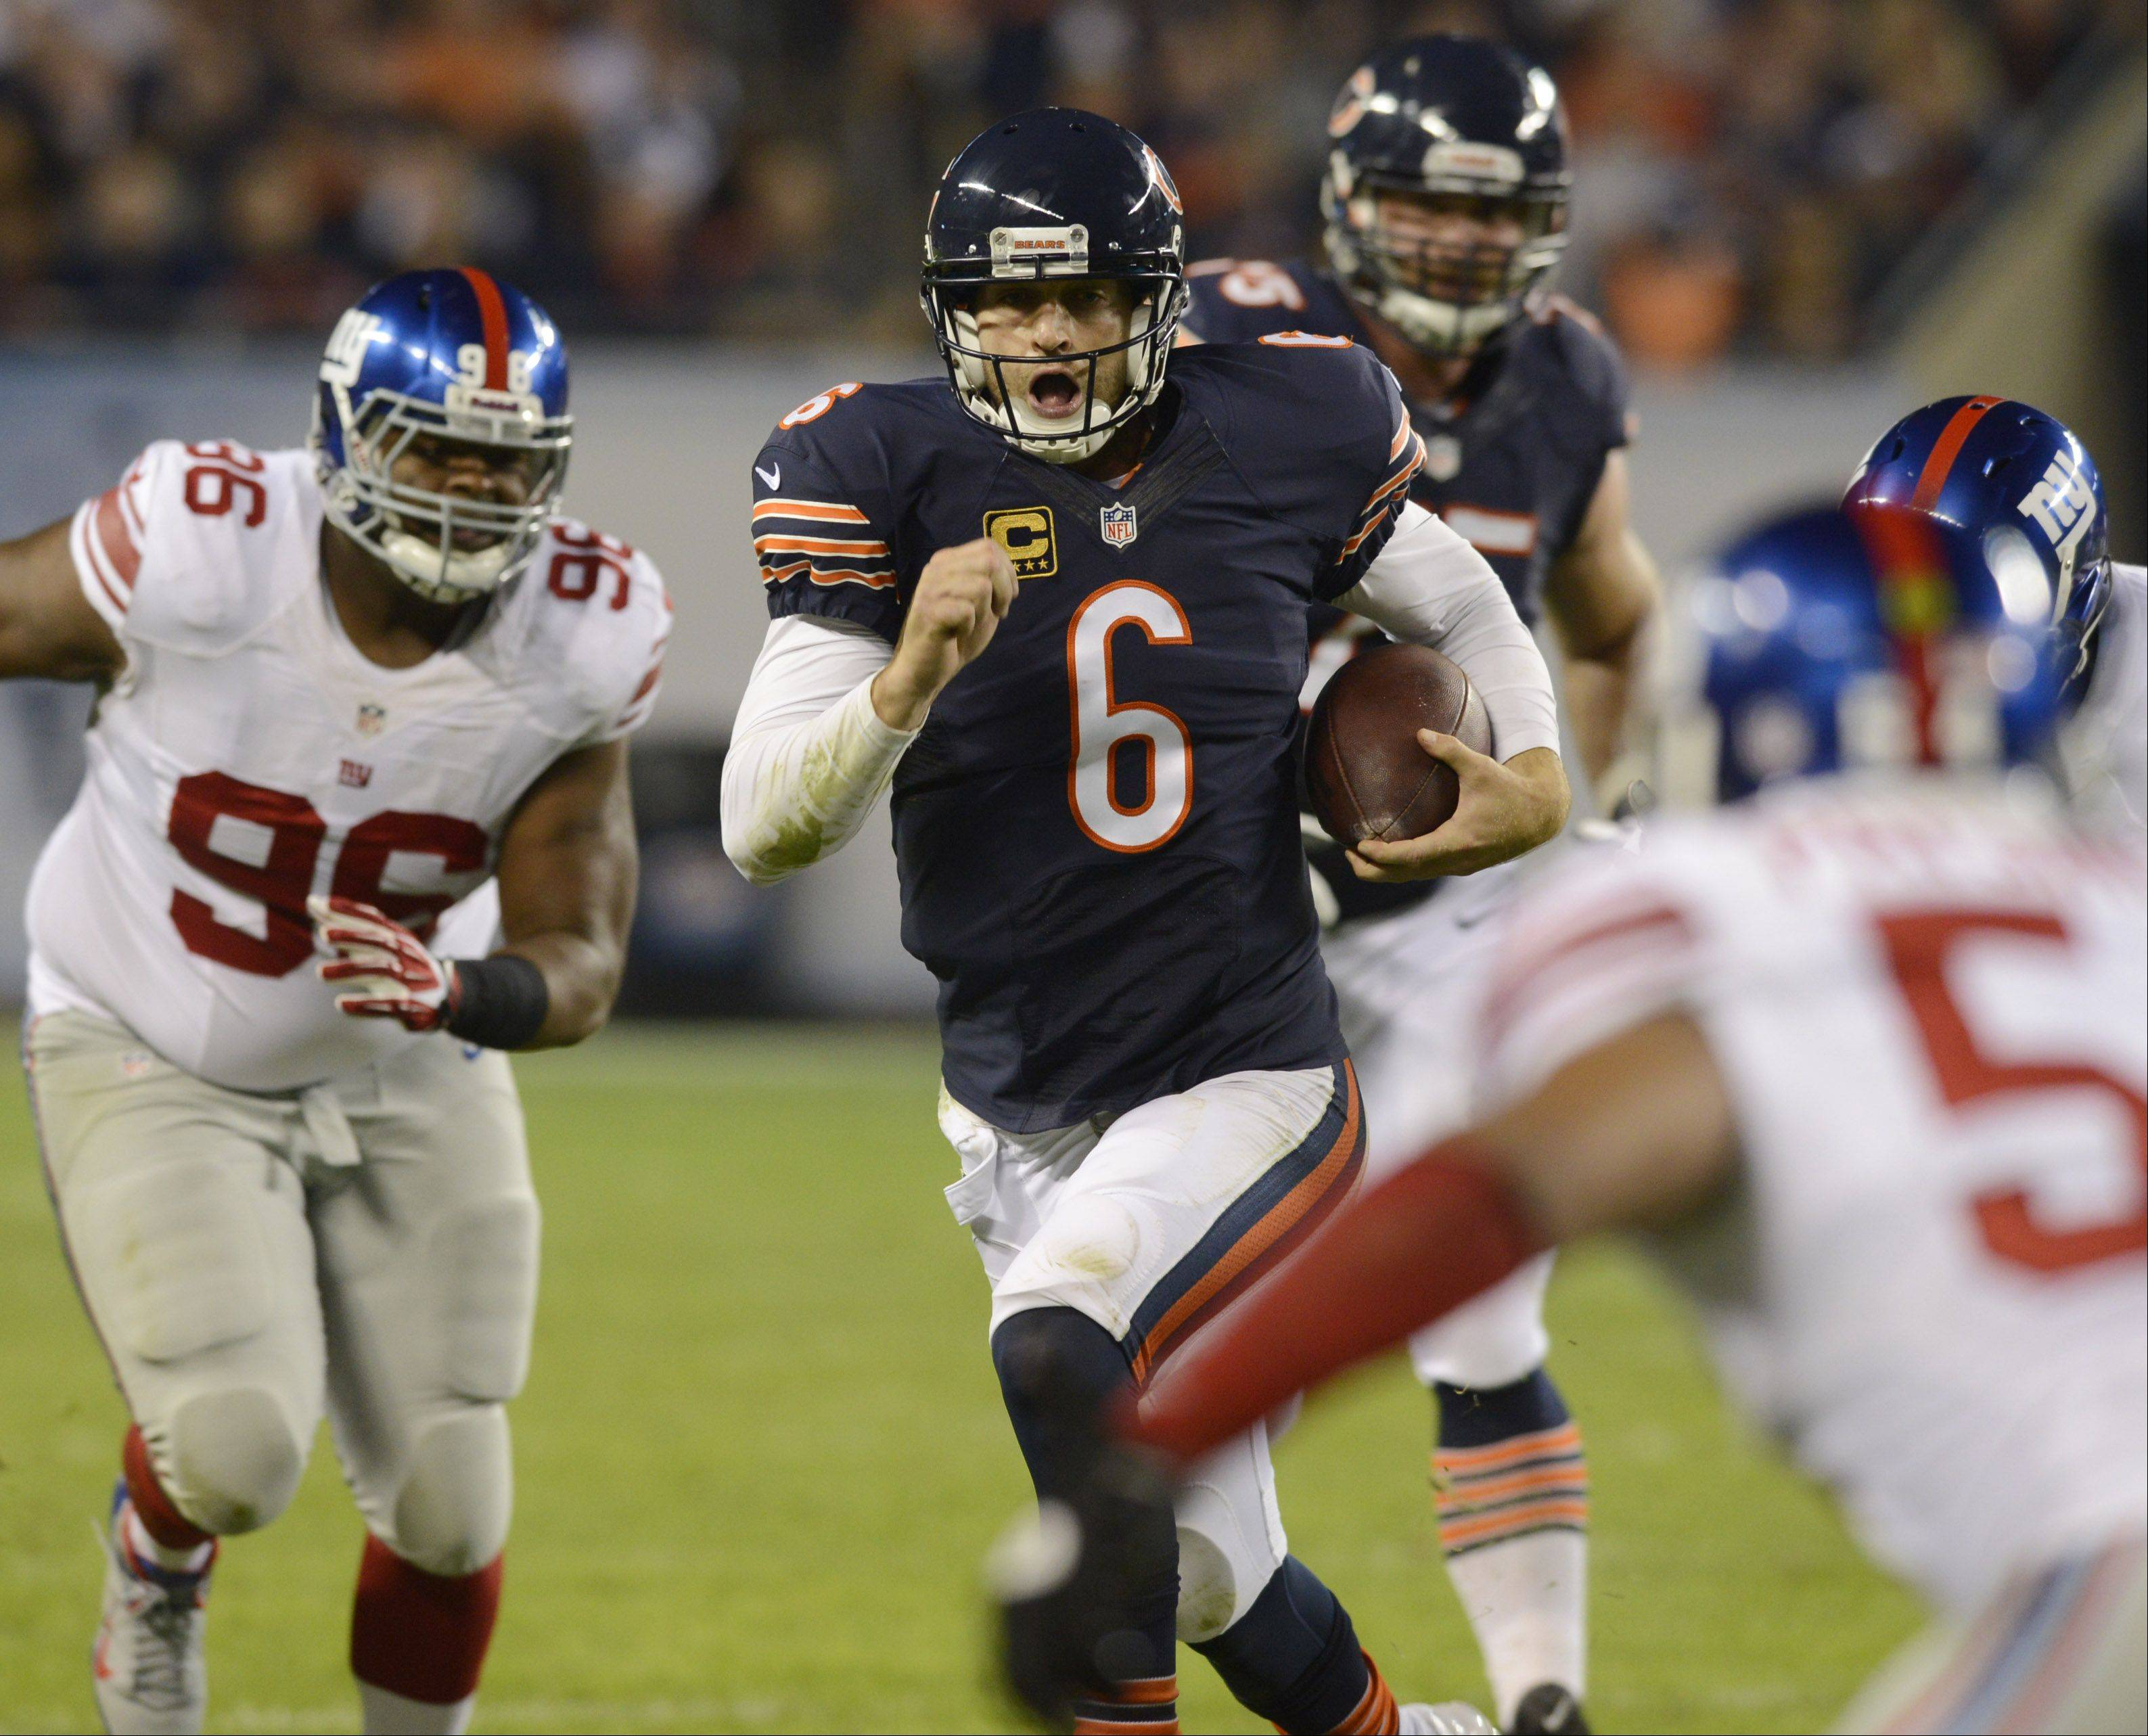 Bears quarterback Jay Cutler runs for yardage during his team's victory over the New York Giants in Week 6 at Soldier Field.